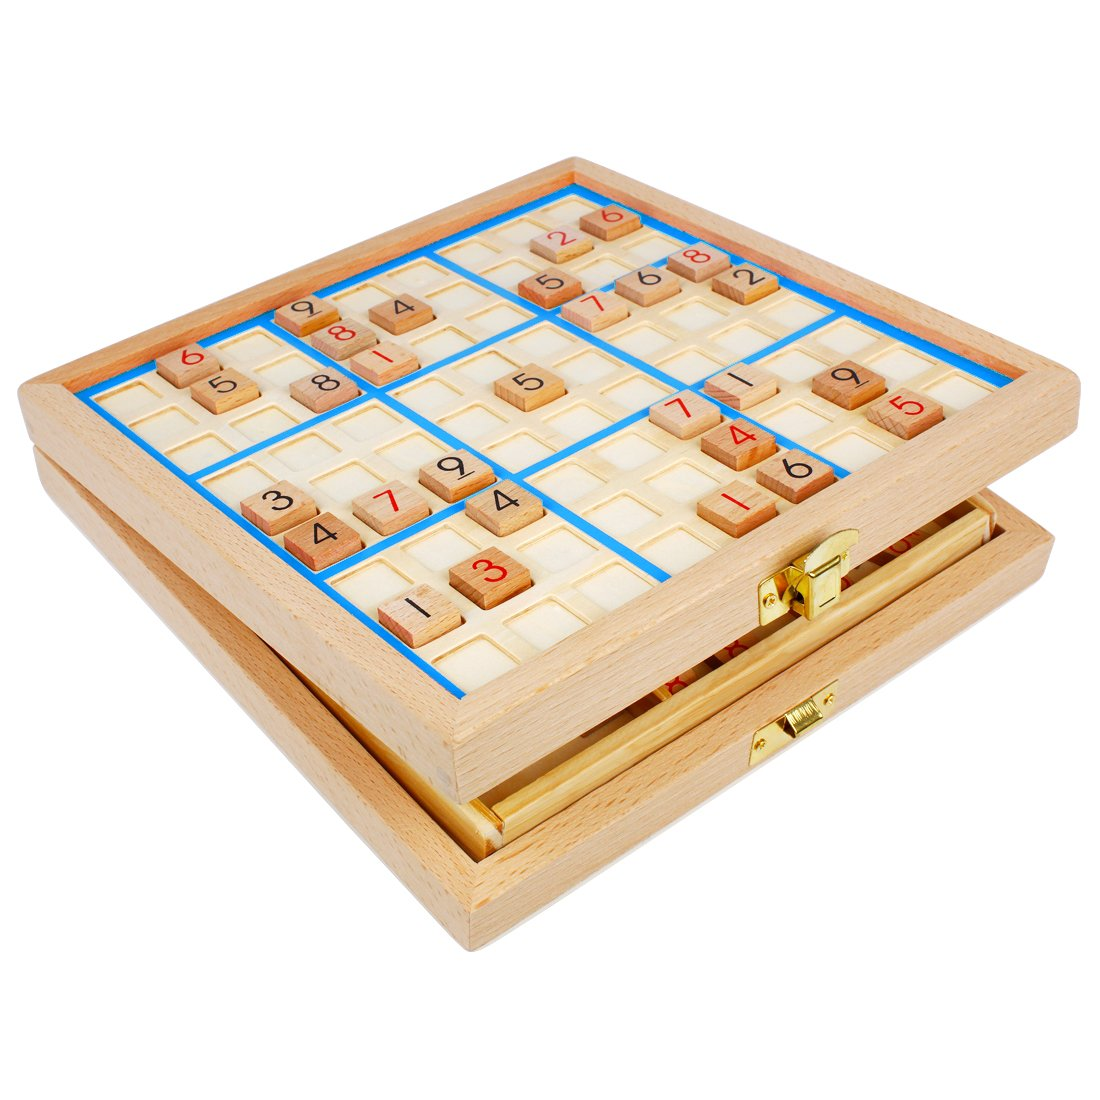 Andux Land Sudoku Board Box 3-in-1 Wooden Number Place Toy SD-03 (Blue) by Andux